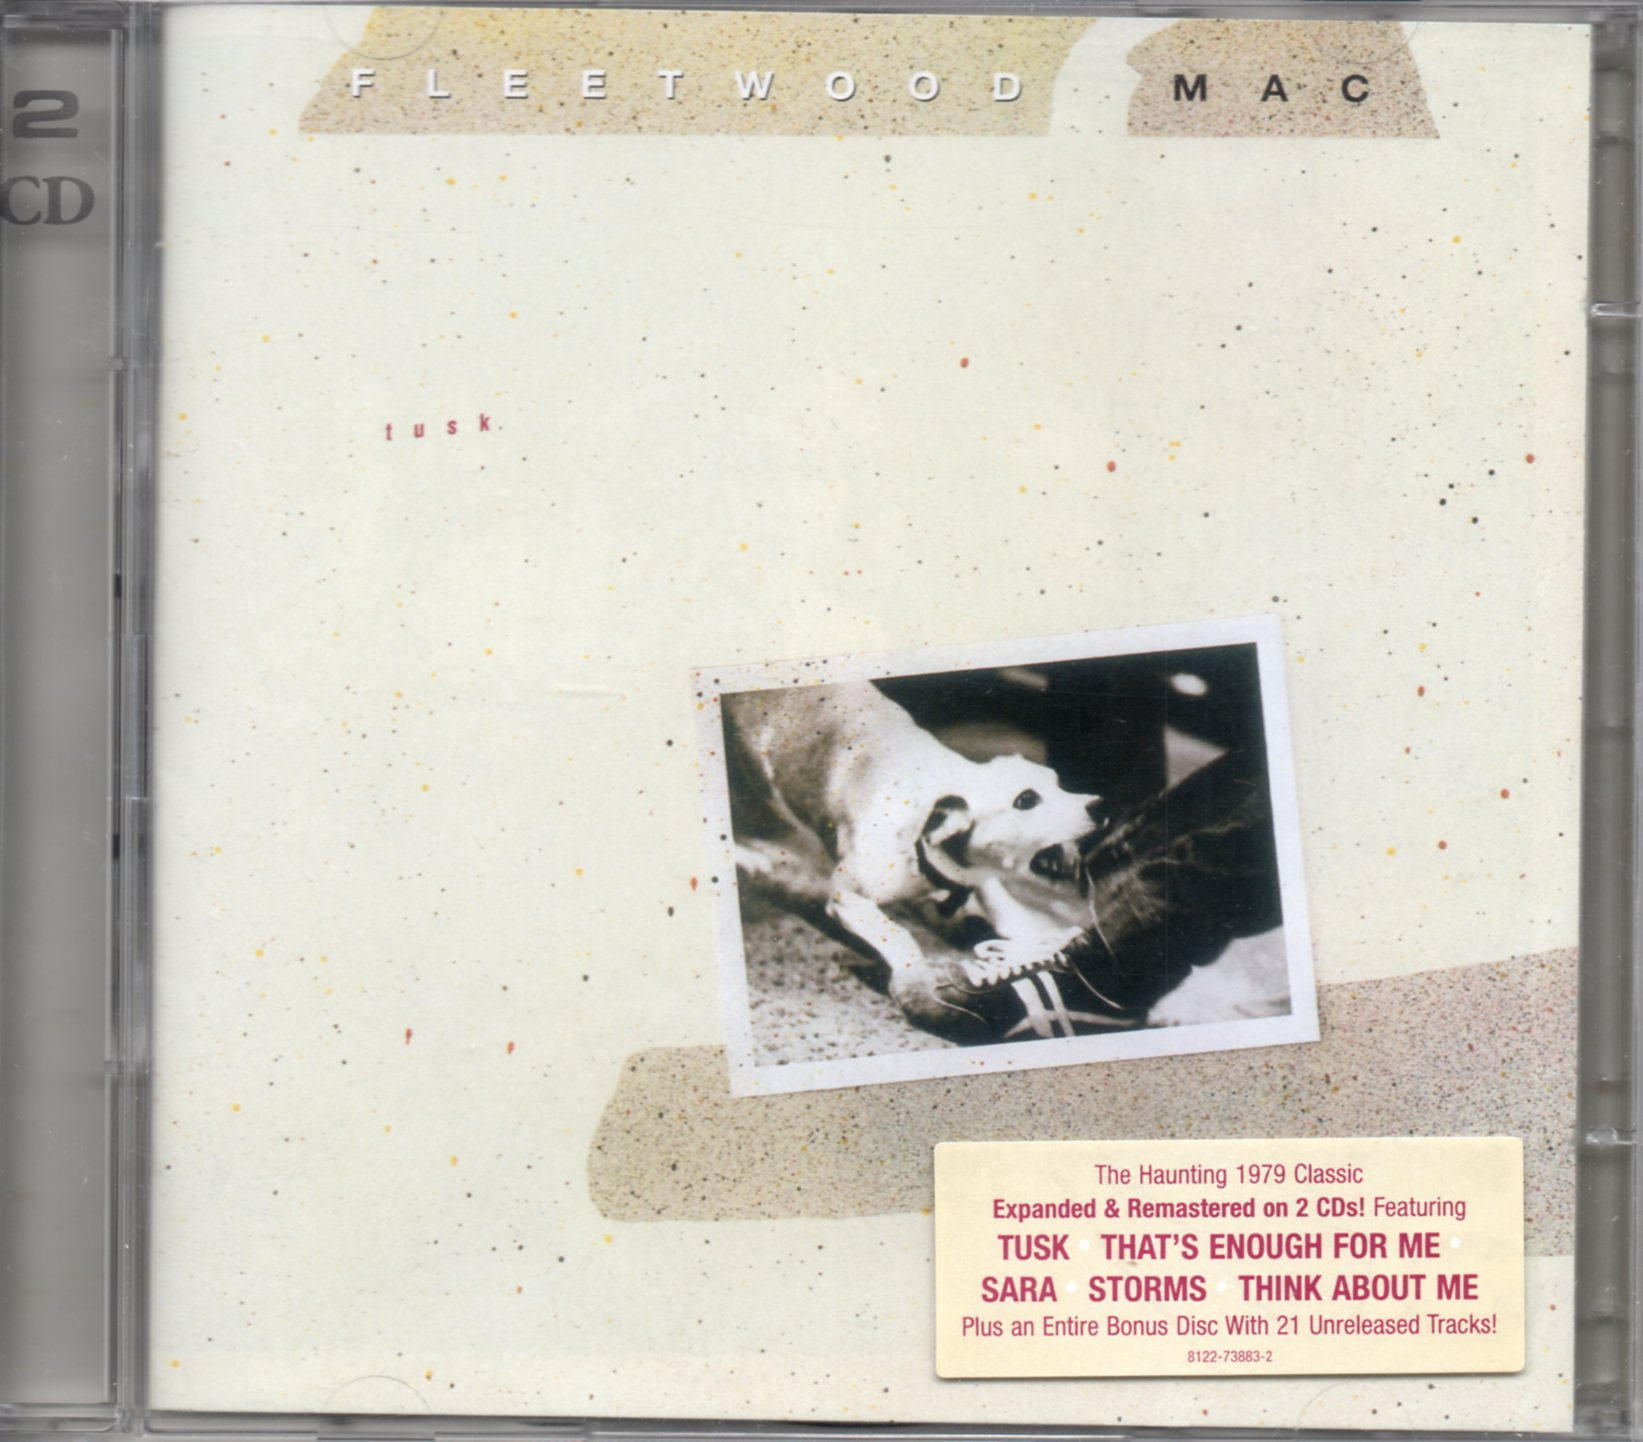 FLEETWOOD MAC - Tusk - Expanded & Remastered - CD x 2